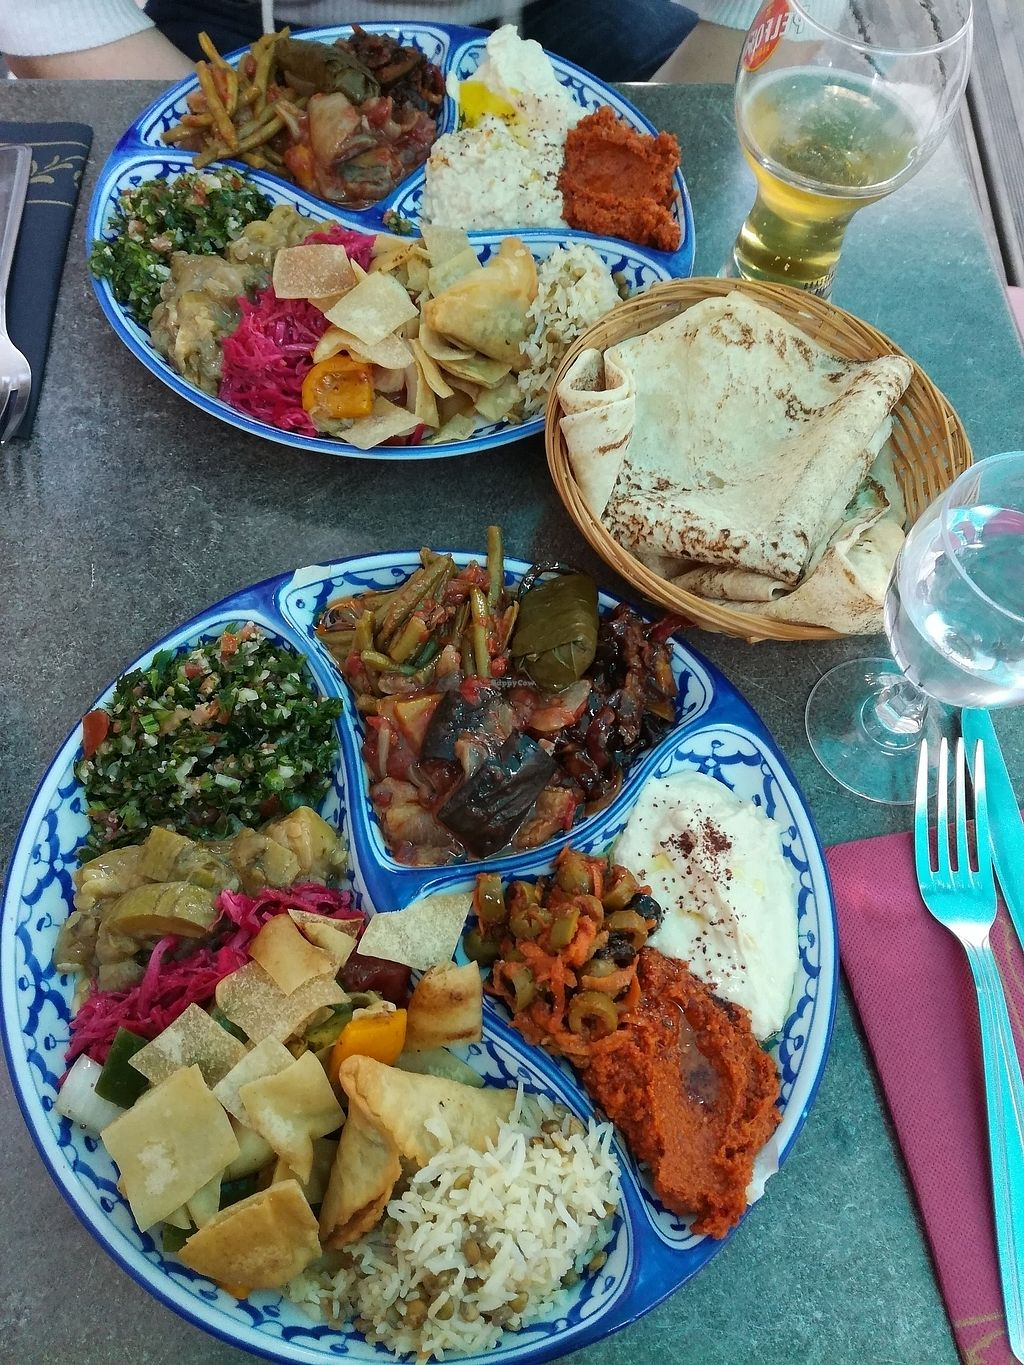 "Photo of Le Cedre  by <a href=""/members/profile/happyowl"">happyowl</a> <br/>Vegan mezze <br/> August 6, 2017  - <a href='/contact/abuse/image/66577/289597'>Report</a>"